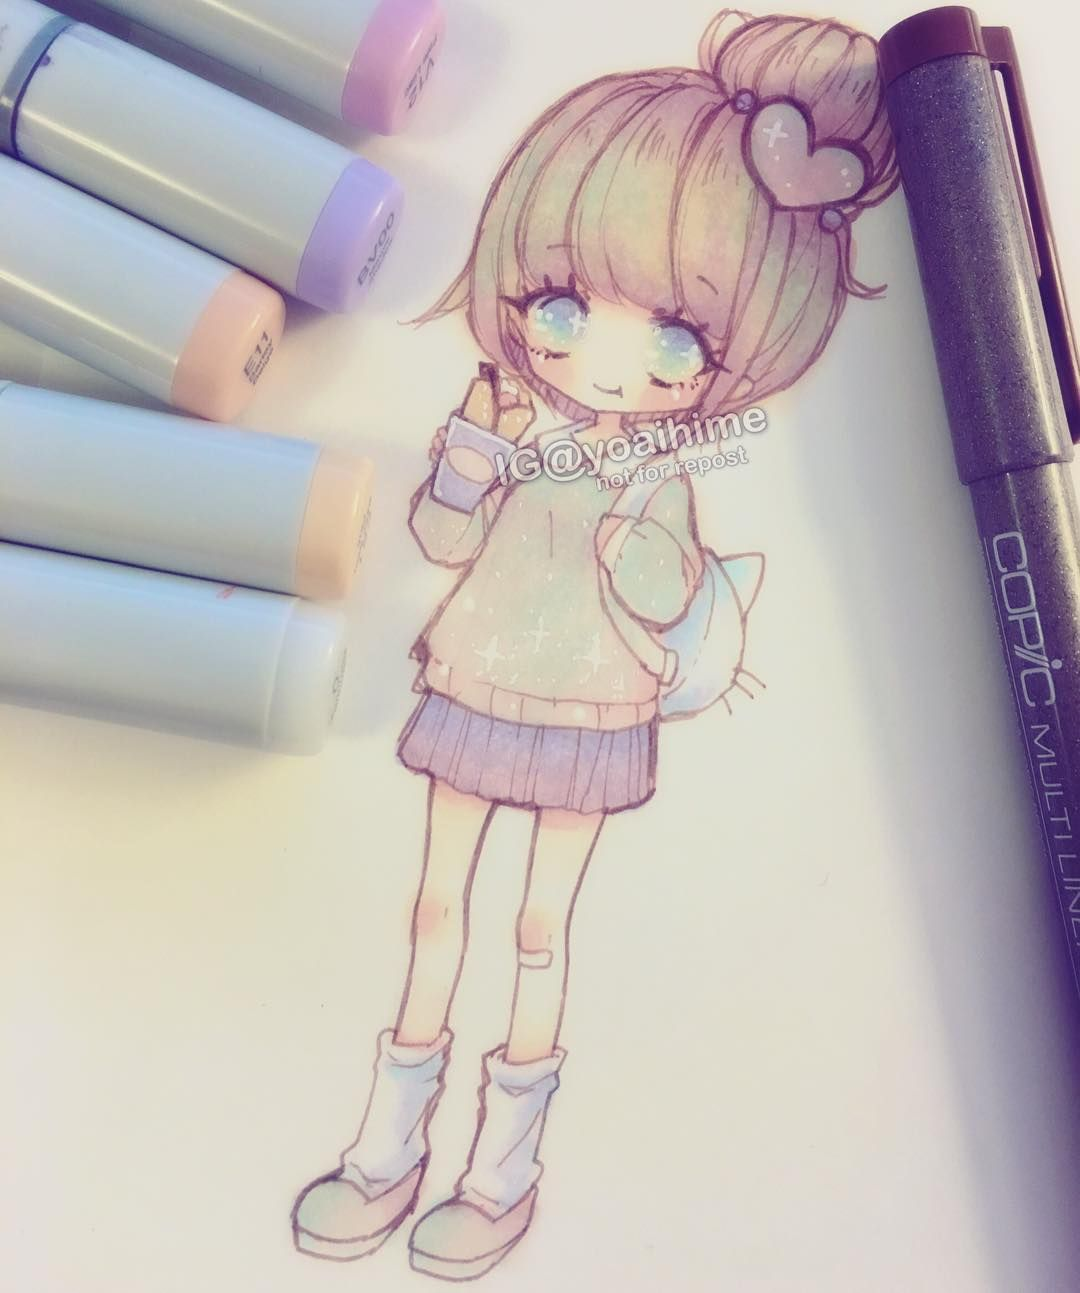 I Want A Crepe Japanese Style Crepes Are So Pretty But I Couldn T Draw In Detail For This Because It Was So Small Cute Art Kawaii Drawings Cute Drawings